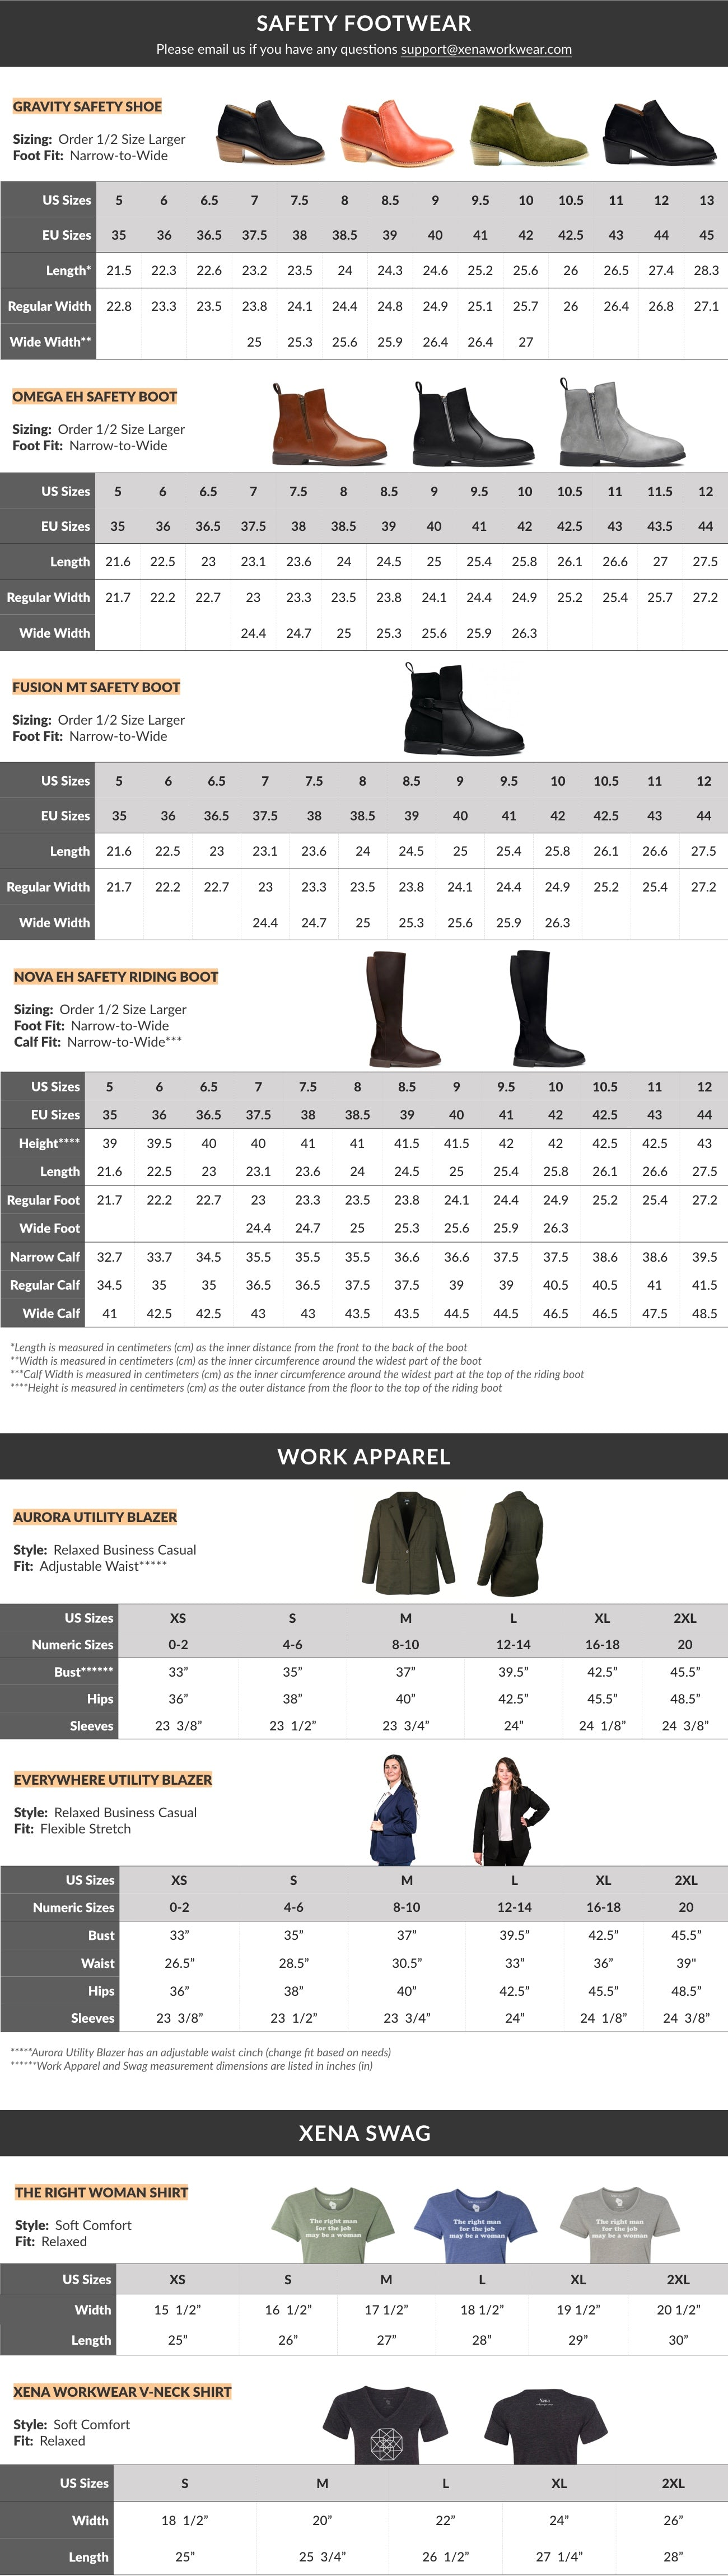 Size Guide for our Women's Steel-Toe Safety Shoes, Booties, Boots, Utility Blazers, and Shirts | Xena Workwear for Women